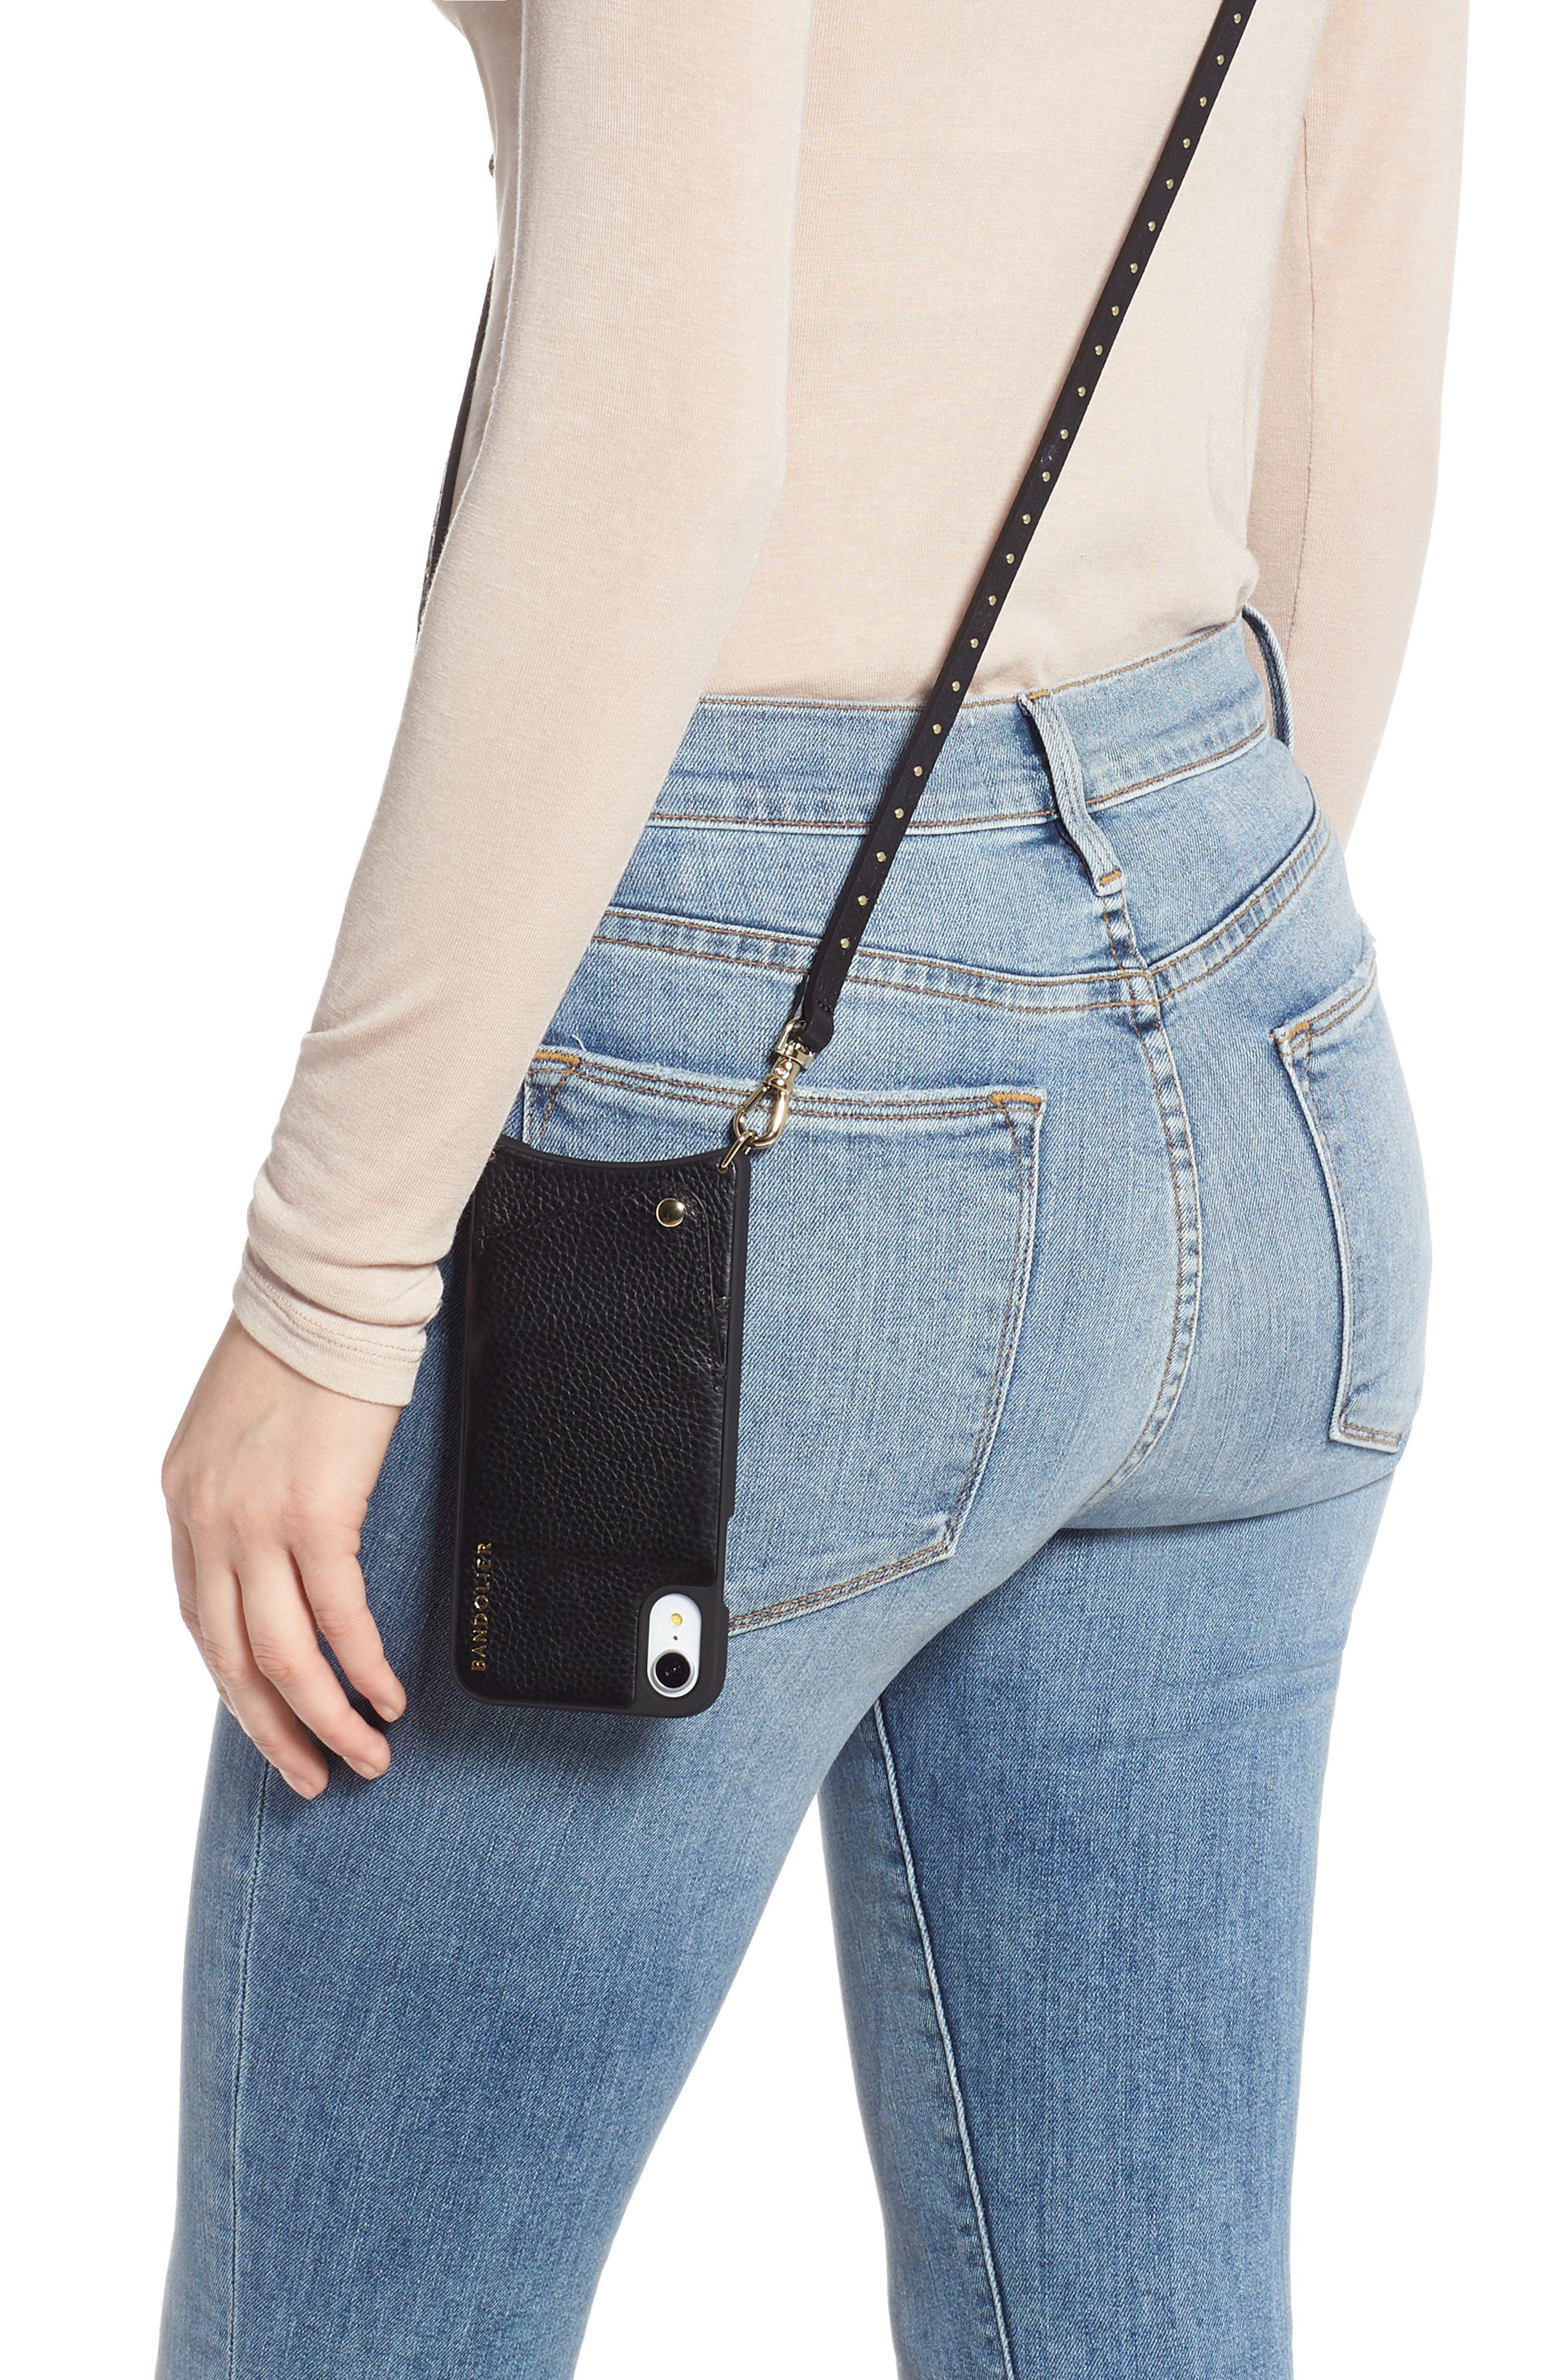 BANDOLIER, Nicole Pebbled Leather X/Xs/Xs Max & XR Crossbody Case, Alternate thumbnail 2, color, BLACK/ GOLD